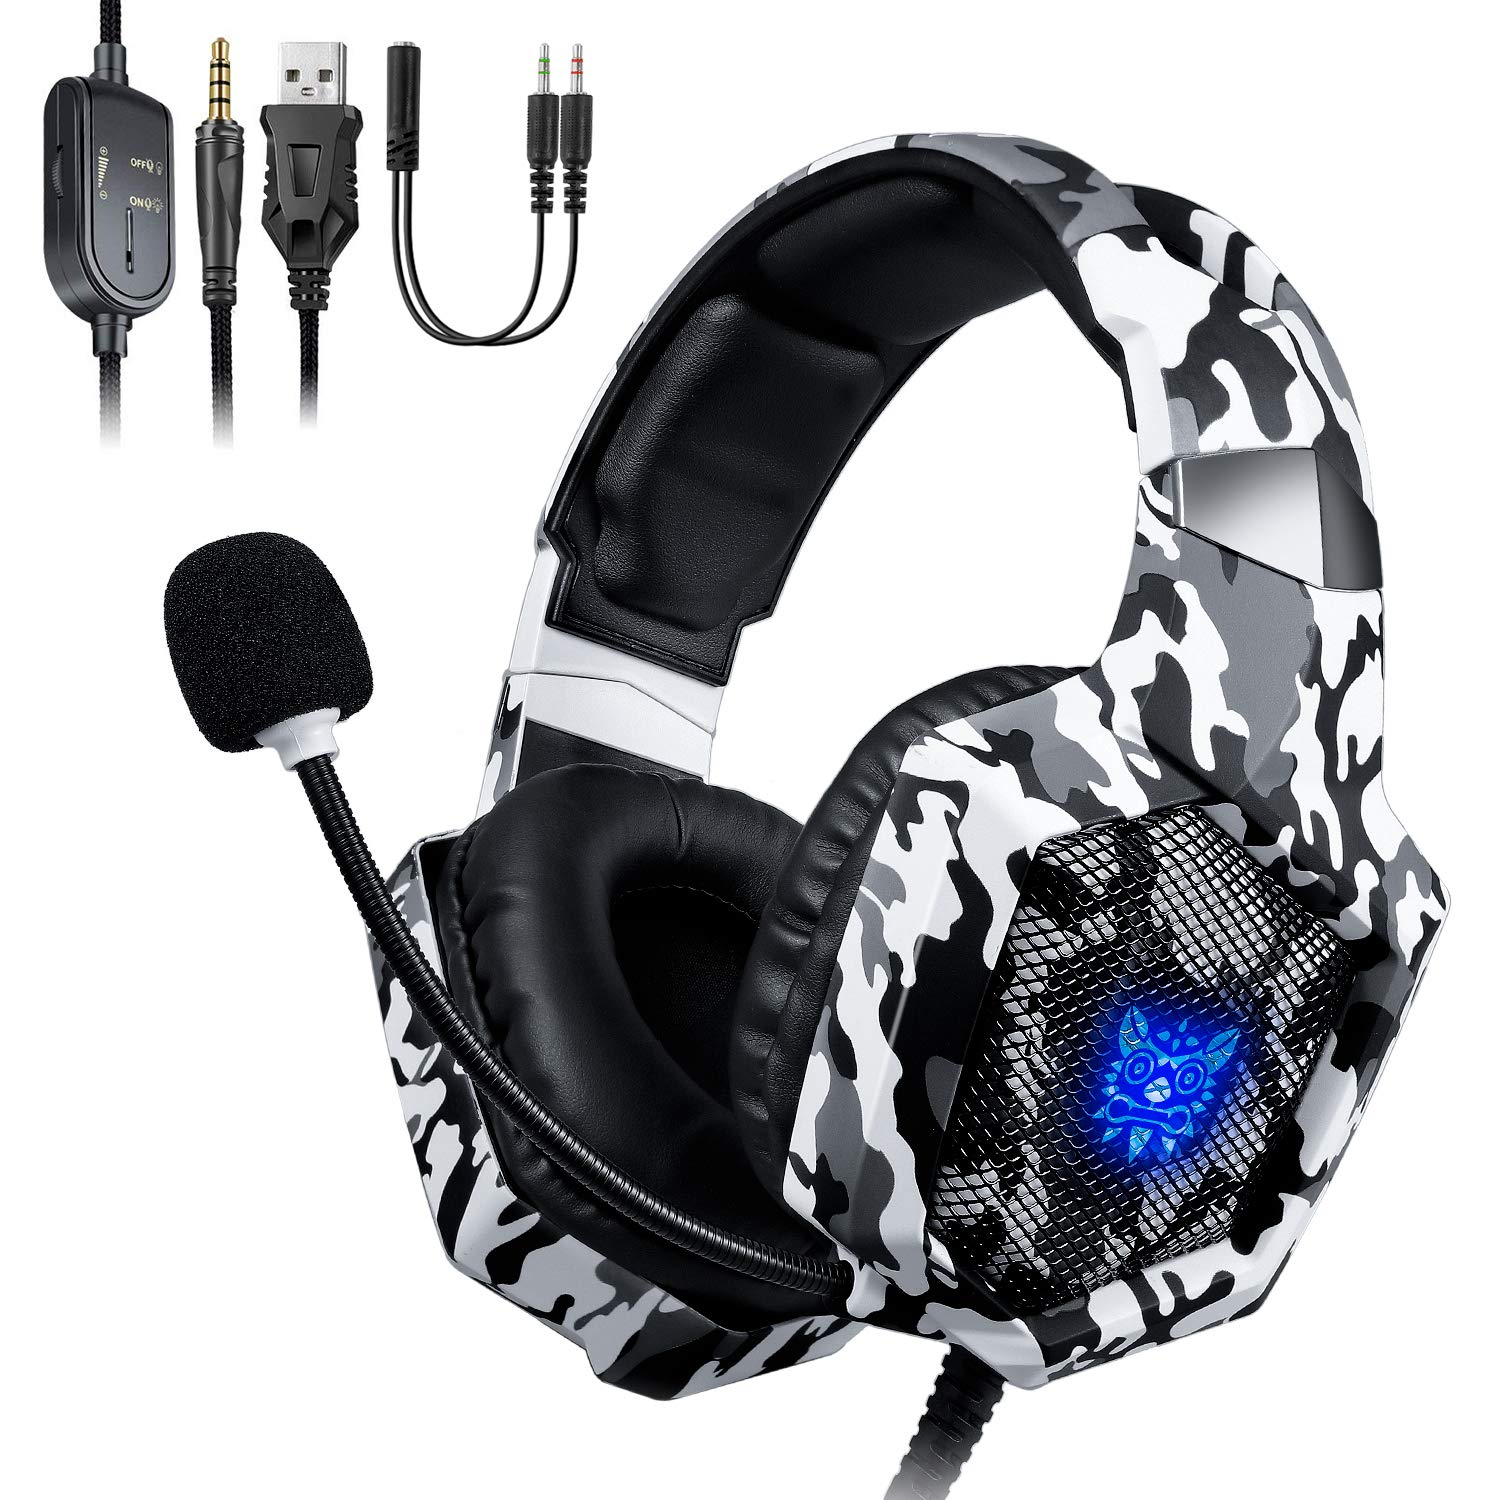 Cascos inalambricos gaming https://amzn.to/2YfIbUQ